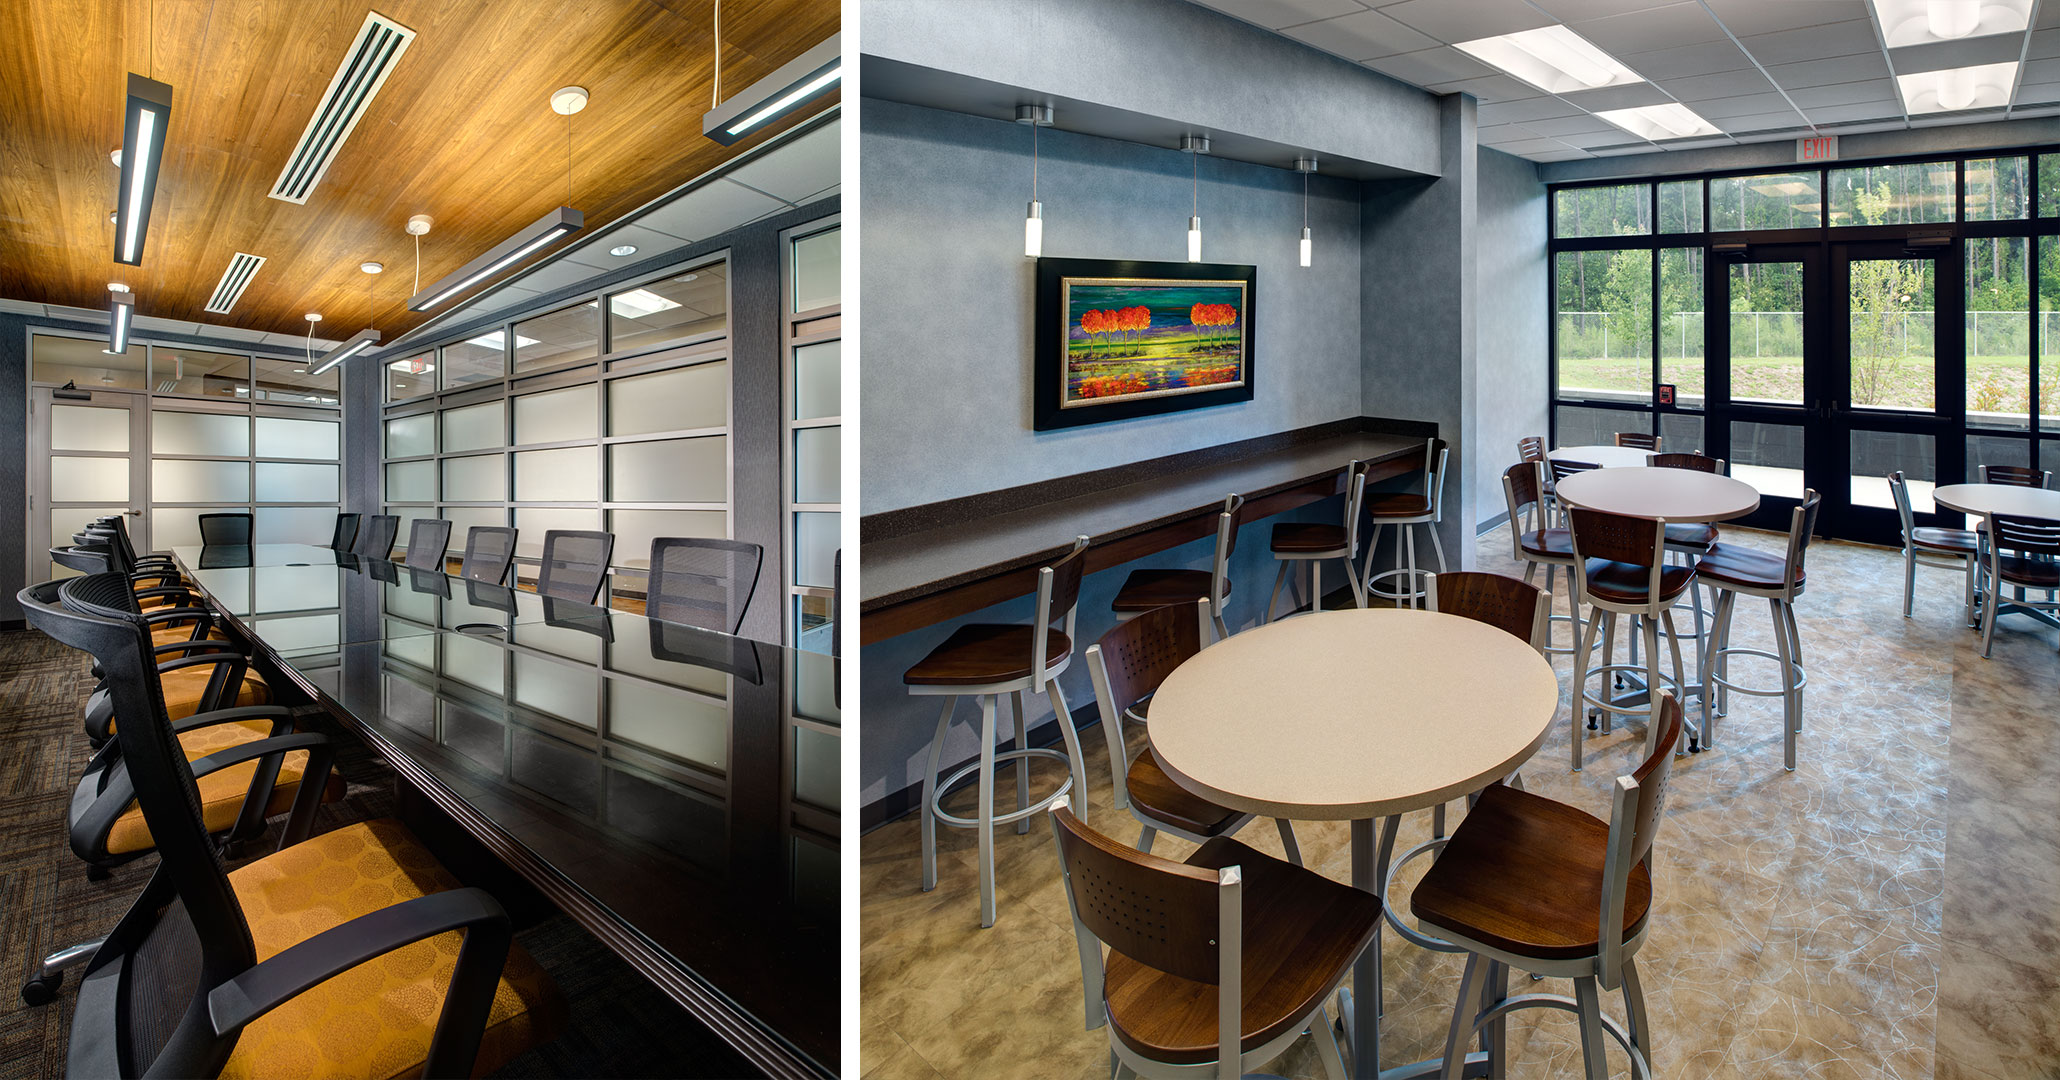 Boudreaux architects worked with the Richland County Recreation Commission to design the interior conference space and cafeteria area at the RCRC Headquarters.